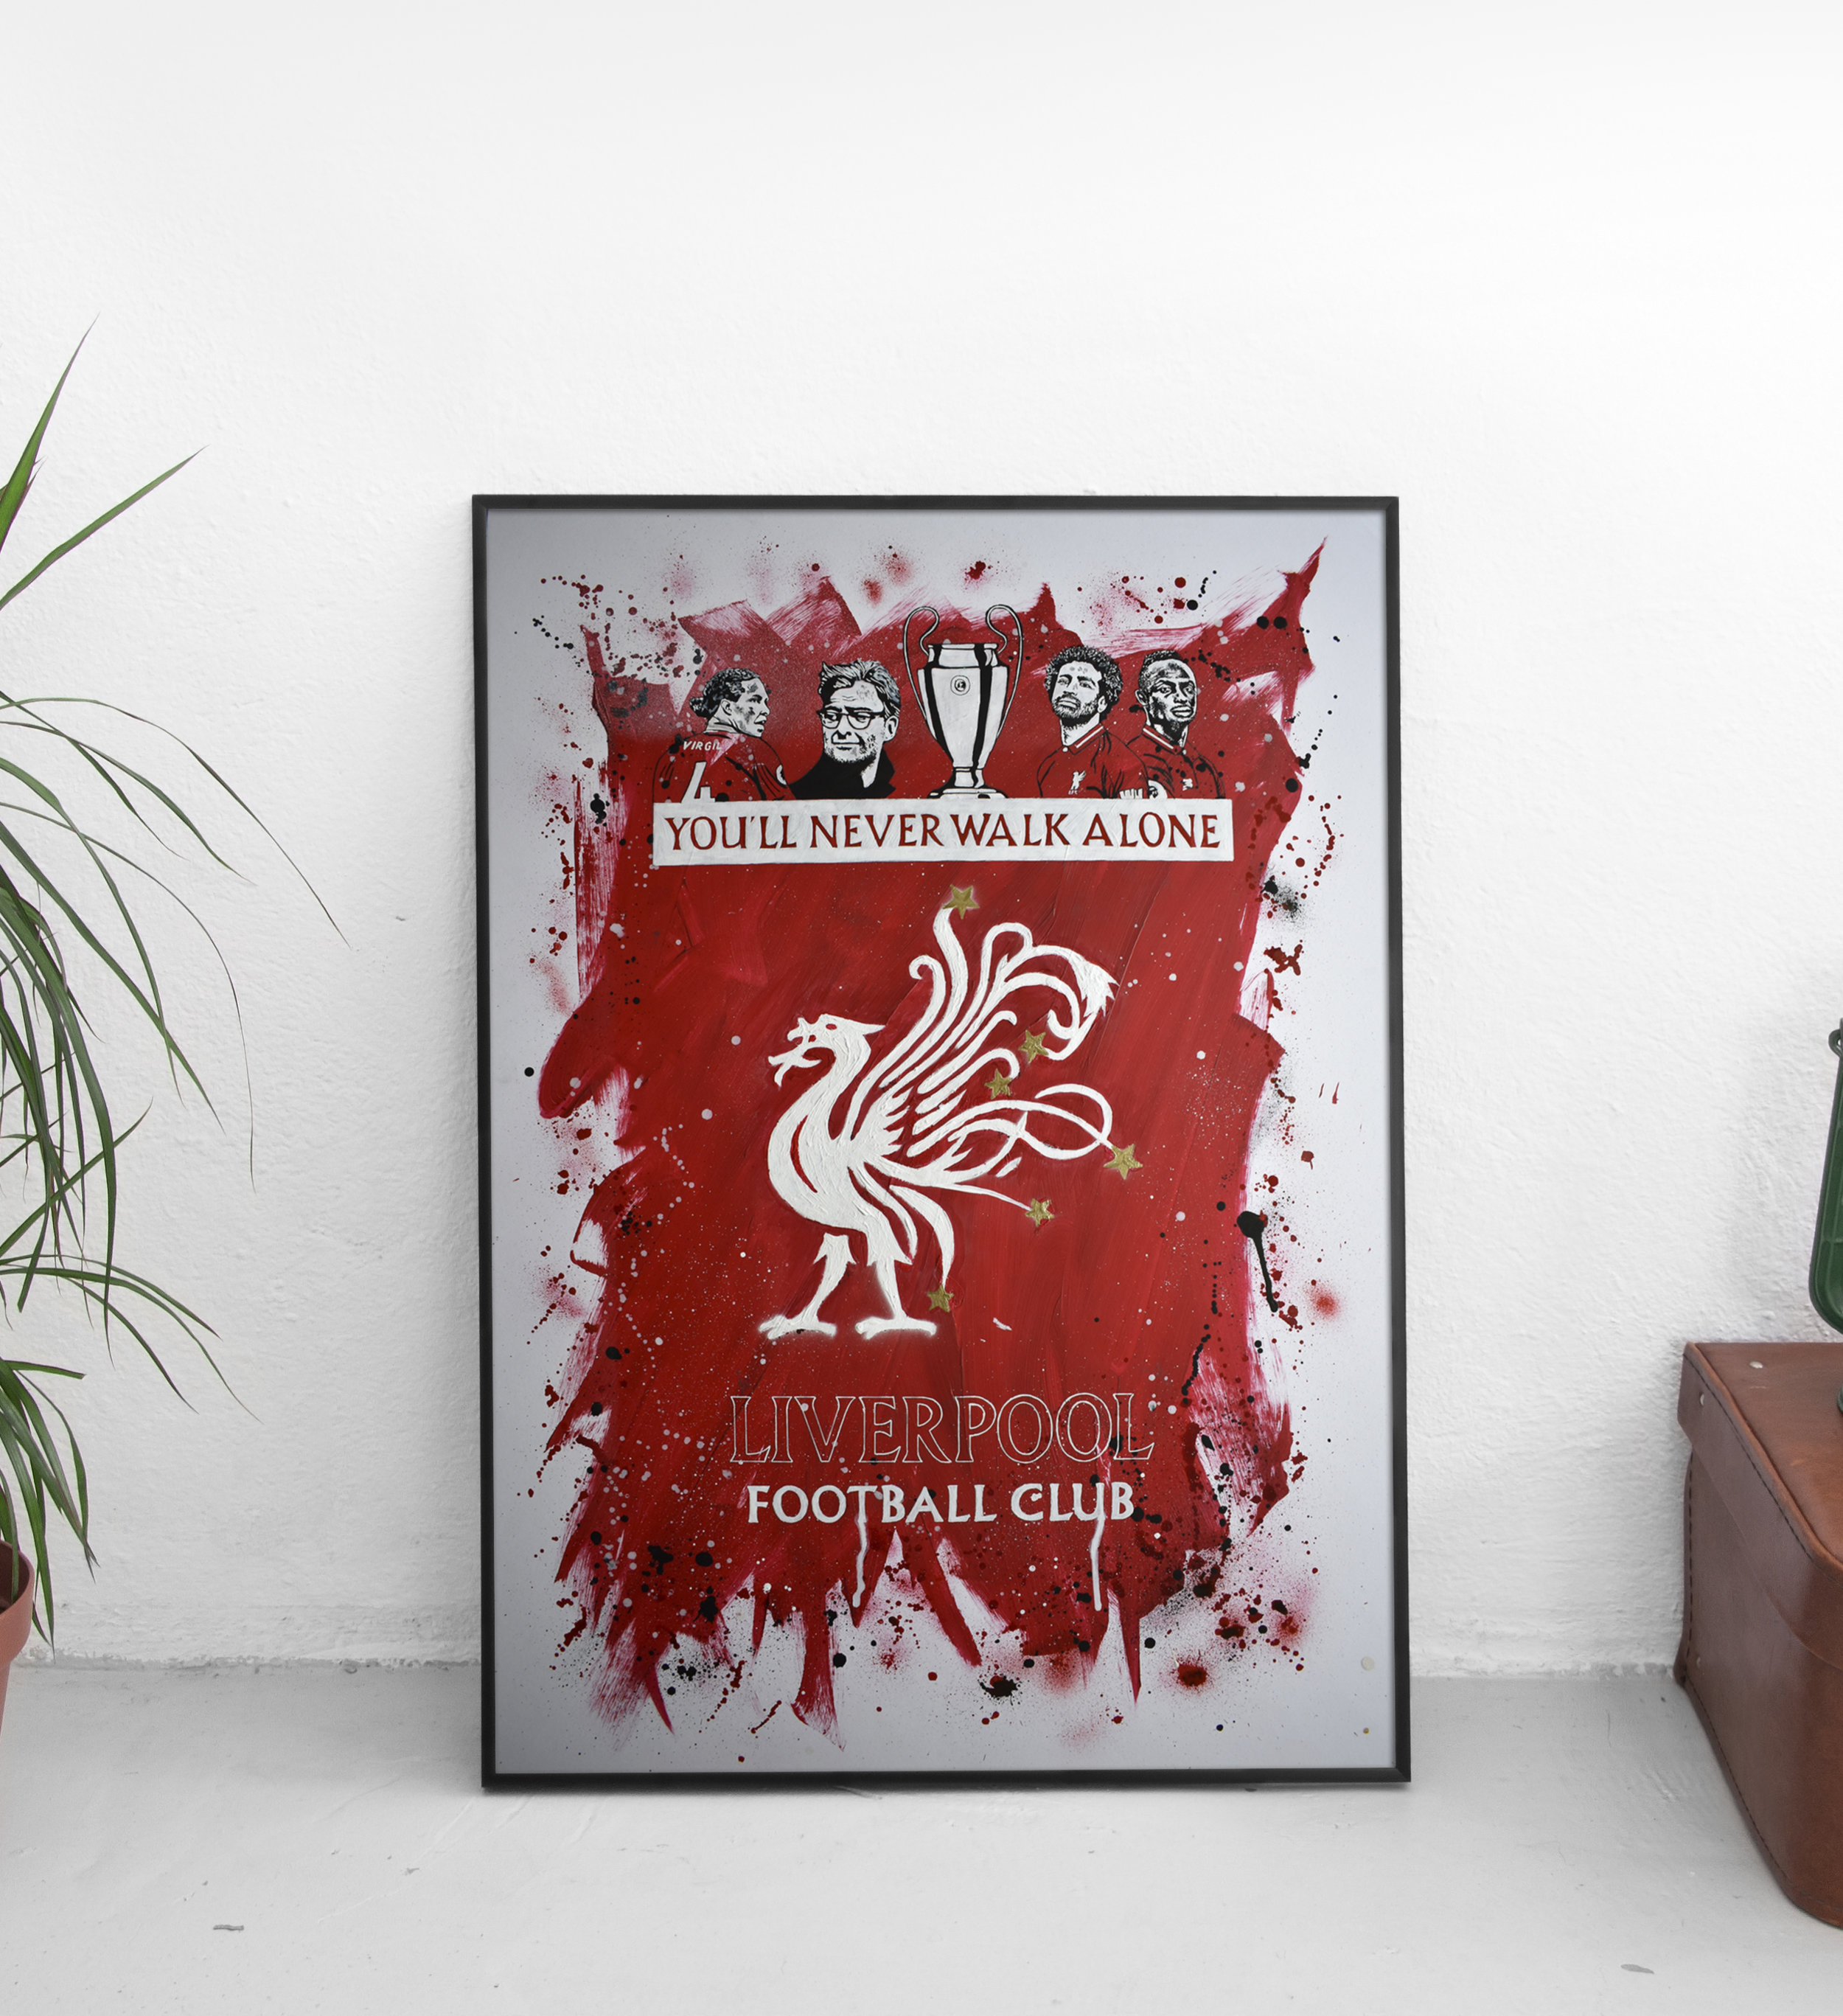 Liverpool FC - Champions League Winners - Ian Salmon Art - Painting - FRAMED - Mockup 4.jpg